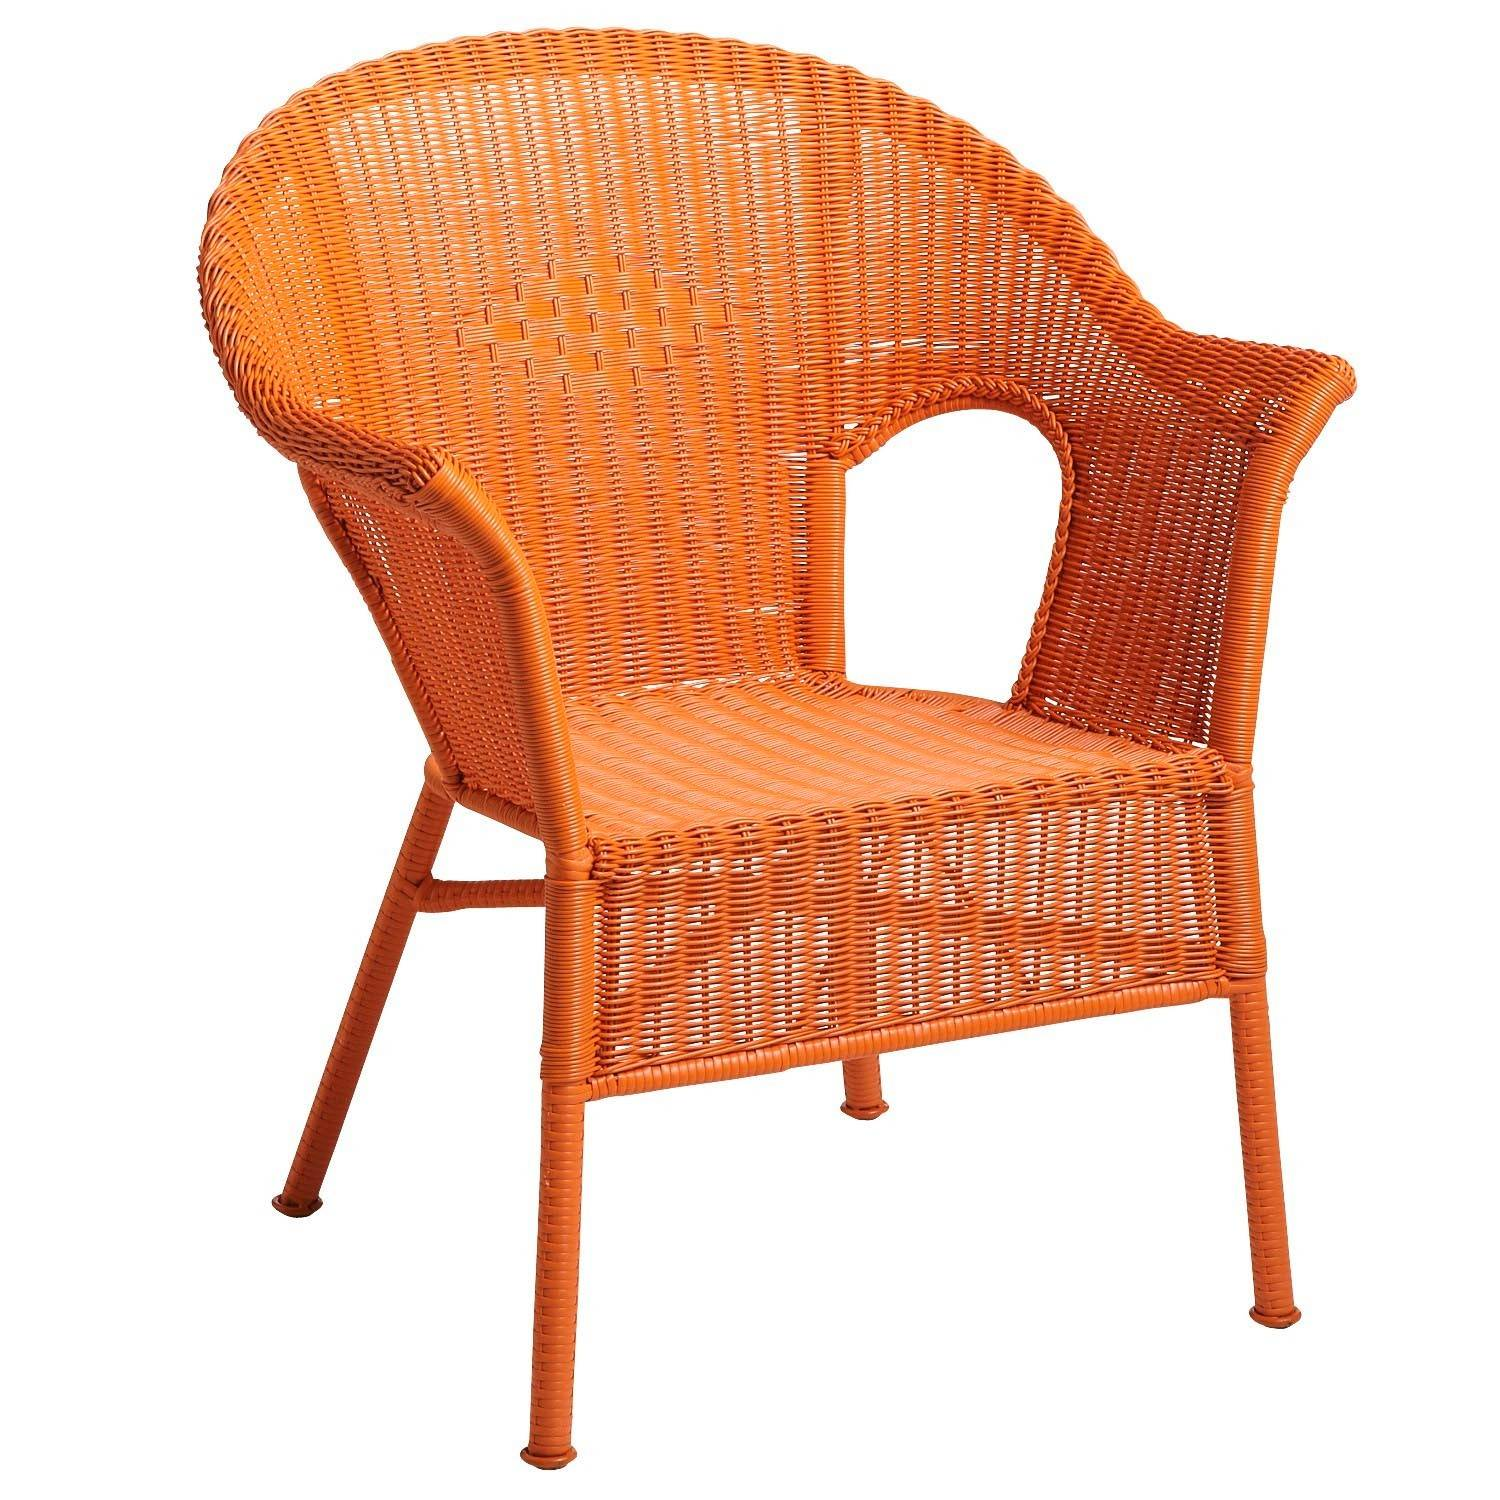 Orange Patio Chairs patio furniture goes bolder, brighter